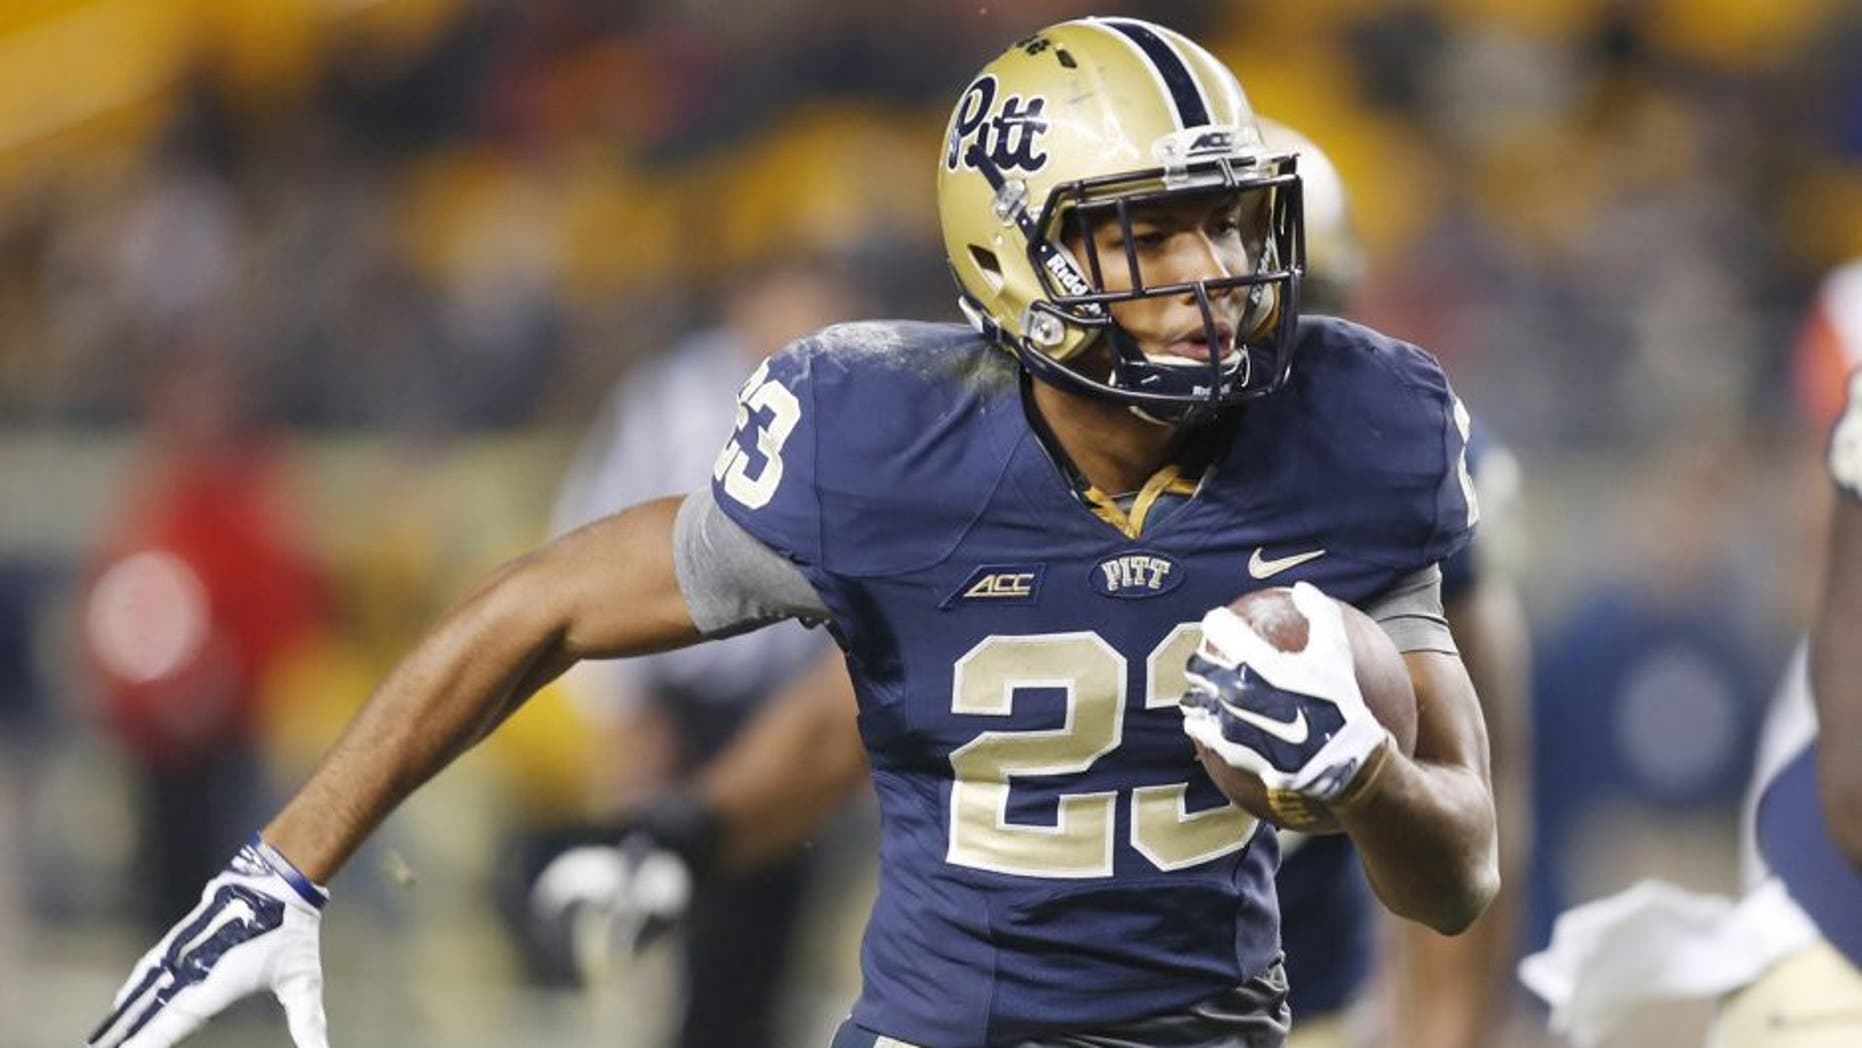 Nov 22, 2014; Pittsburgh, PA, USA; Pittsburgh Panthers wide receiver Tyler Boyd (23) runs on a forty-nine yard touchdown reception against the Syracuse Orange during the fourth quarter at Heinz Field. Pittsburgh won 30-7. Mandatory Credit: Charles LeClaire-USA TODAY Sports